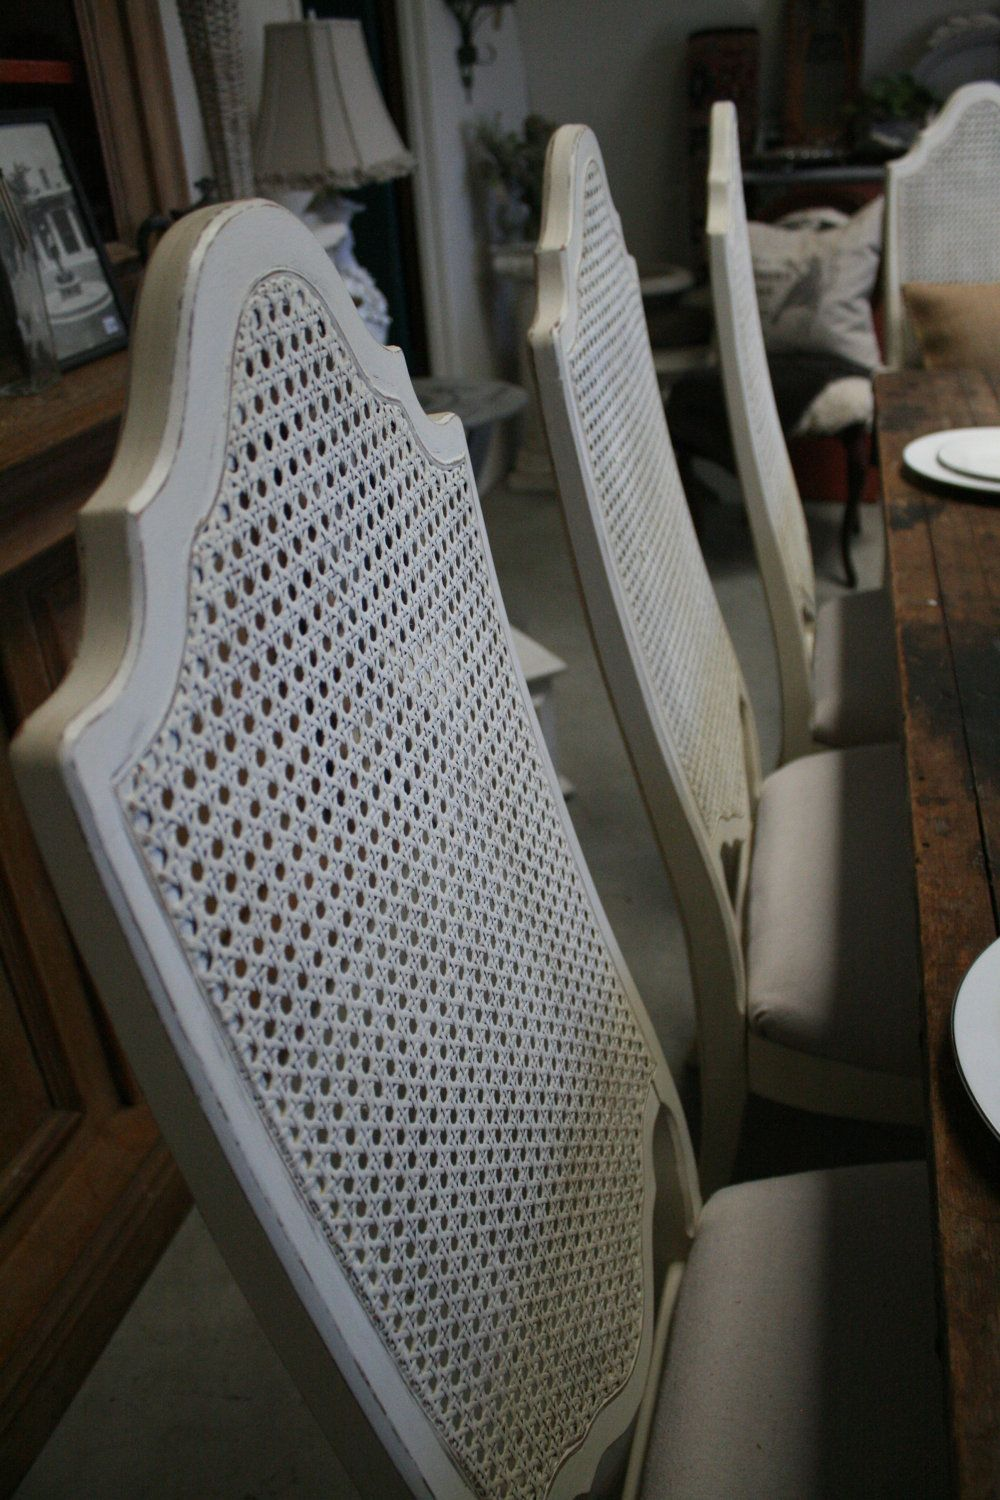 Louis cane back dining chair set of 2 ballard designs - Set Of 6 Vintage Cane Back Dining Chairs Creamy White Linen French Country Reserved